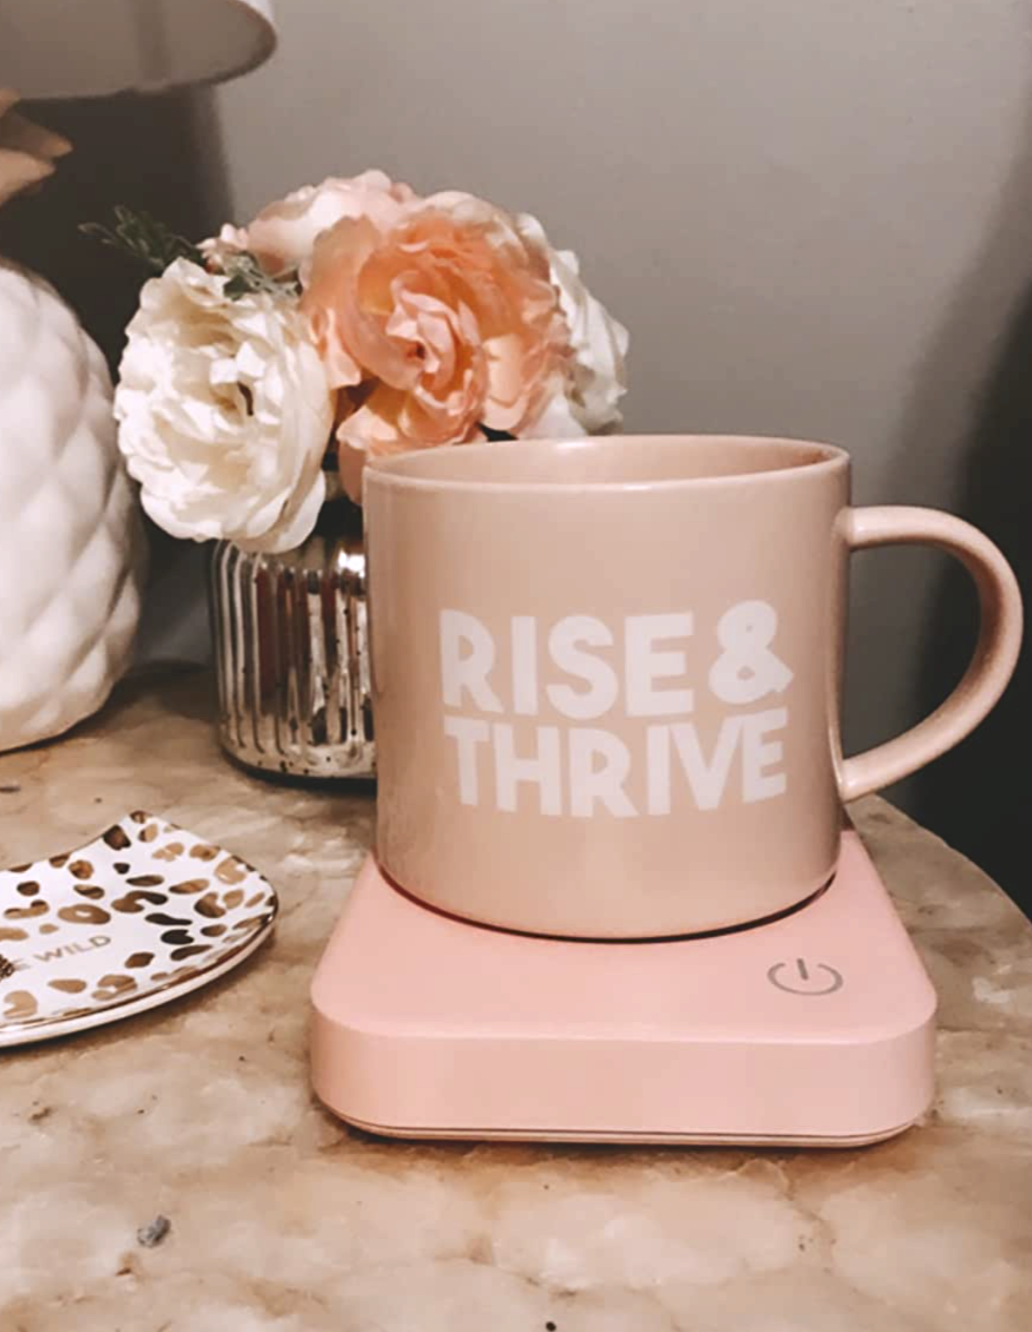 """A pink mug of coffee that says """"Rise & thrive"""" sitting on top of a pink heated small plate"""